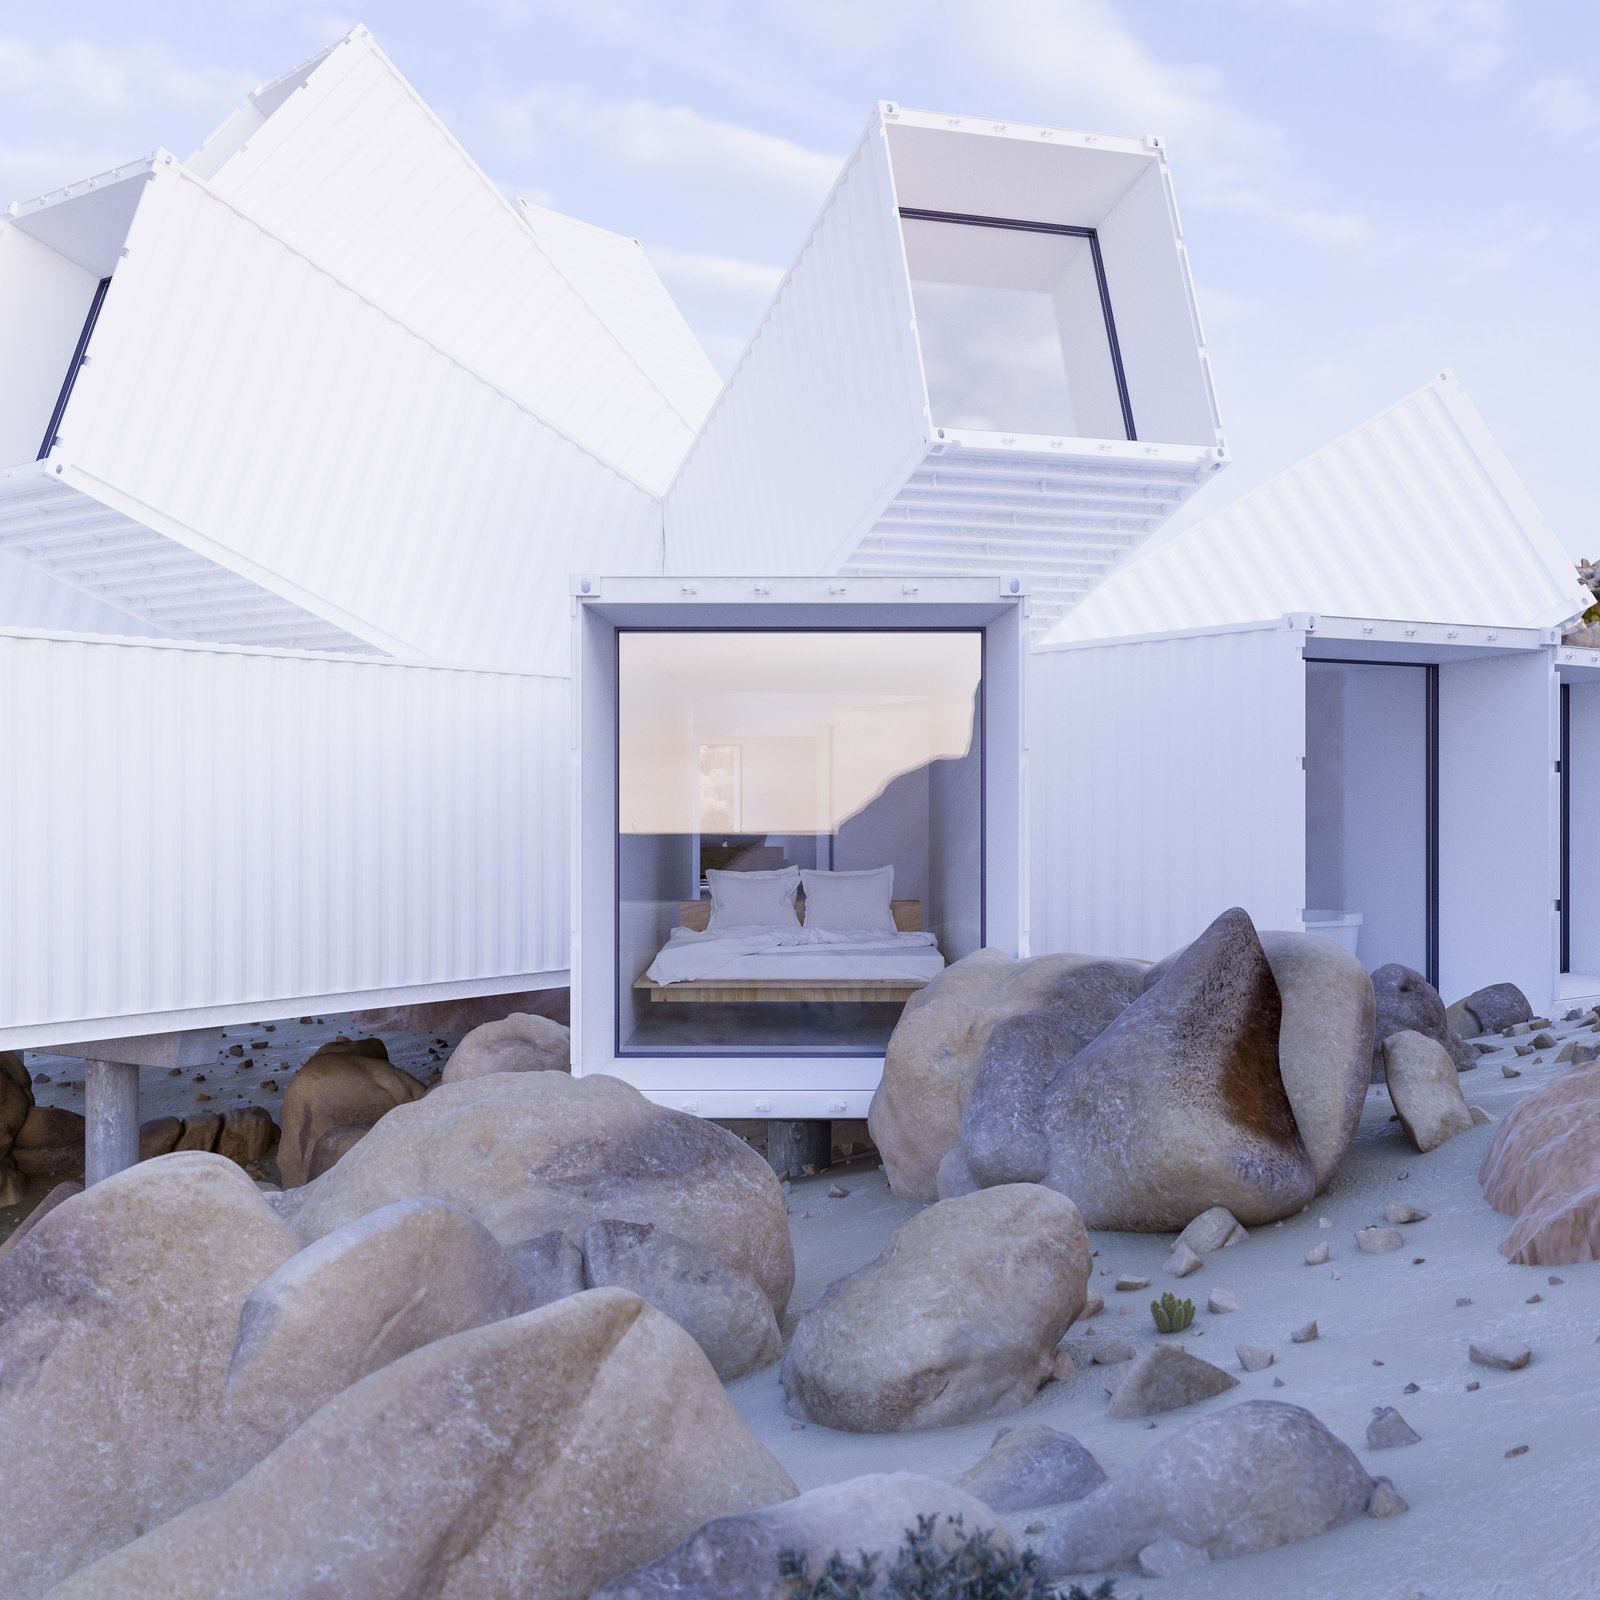 A previously unrealized design by Whitaker Studio will become a vacation home in Joshua Tree, each shipping container strategically angled for protection from the climate, privacy, and desert views.  Shipping containers, angled in various directions to capture views or provide privacy, will make up the exoskeleton of the residence. The approximately 2,000-square-foot home will include three ensuite bedrooms, a kitchen, and a living room. A garage with a solar panel roof will power the dwelling. Nestled in a gully created by stormwater, Joshua Tree Residence engages with the topography and climate for a dynamic desert escape. Tagged: Windows and Metal.  Best Photos from A Film Producer's Desert Retreat Is a Starburst of Shipping Containers